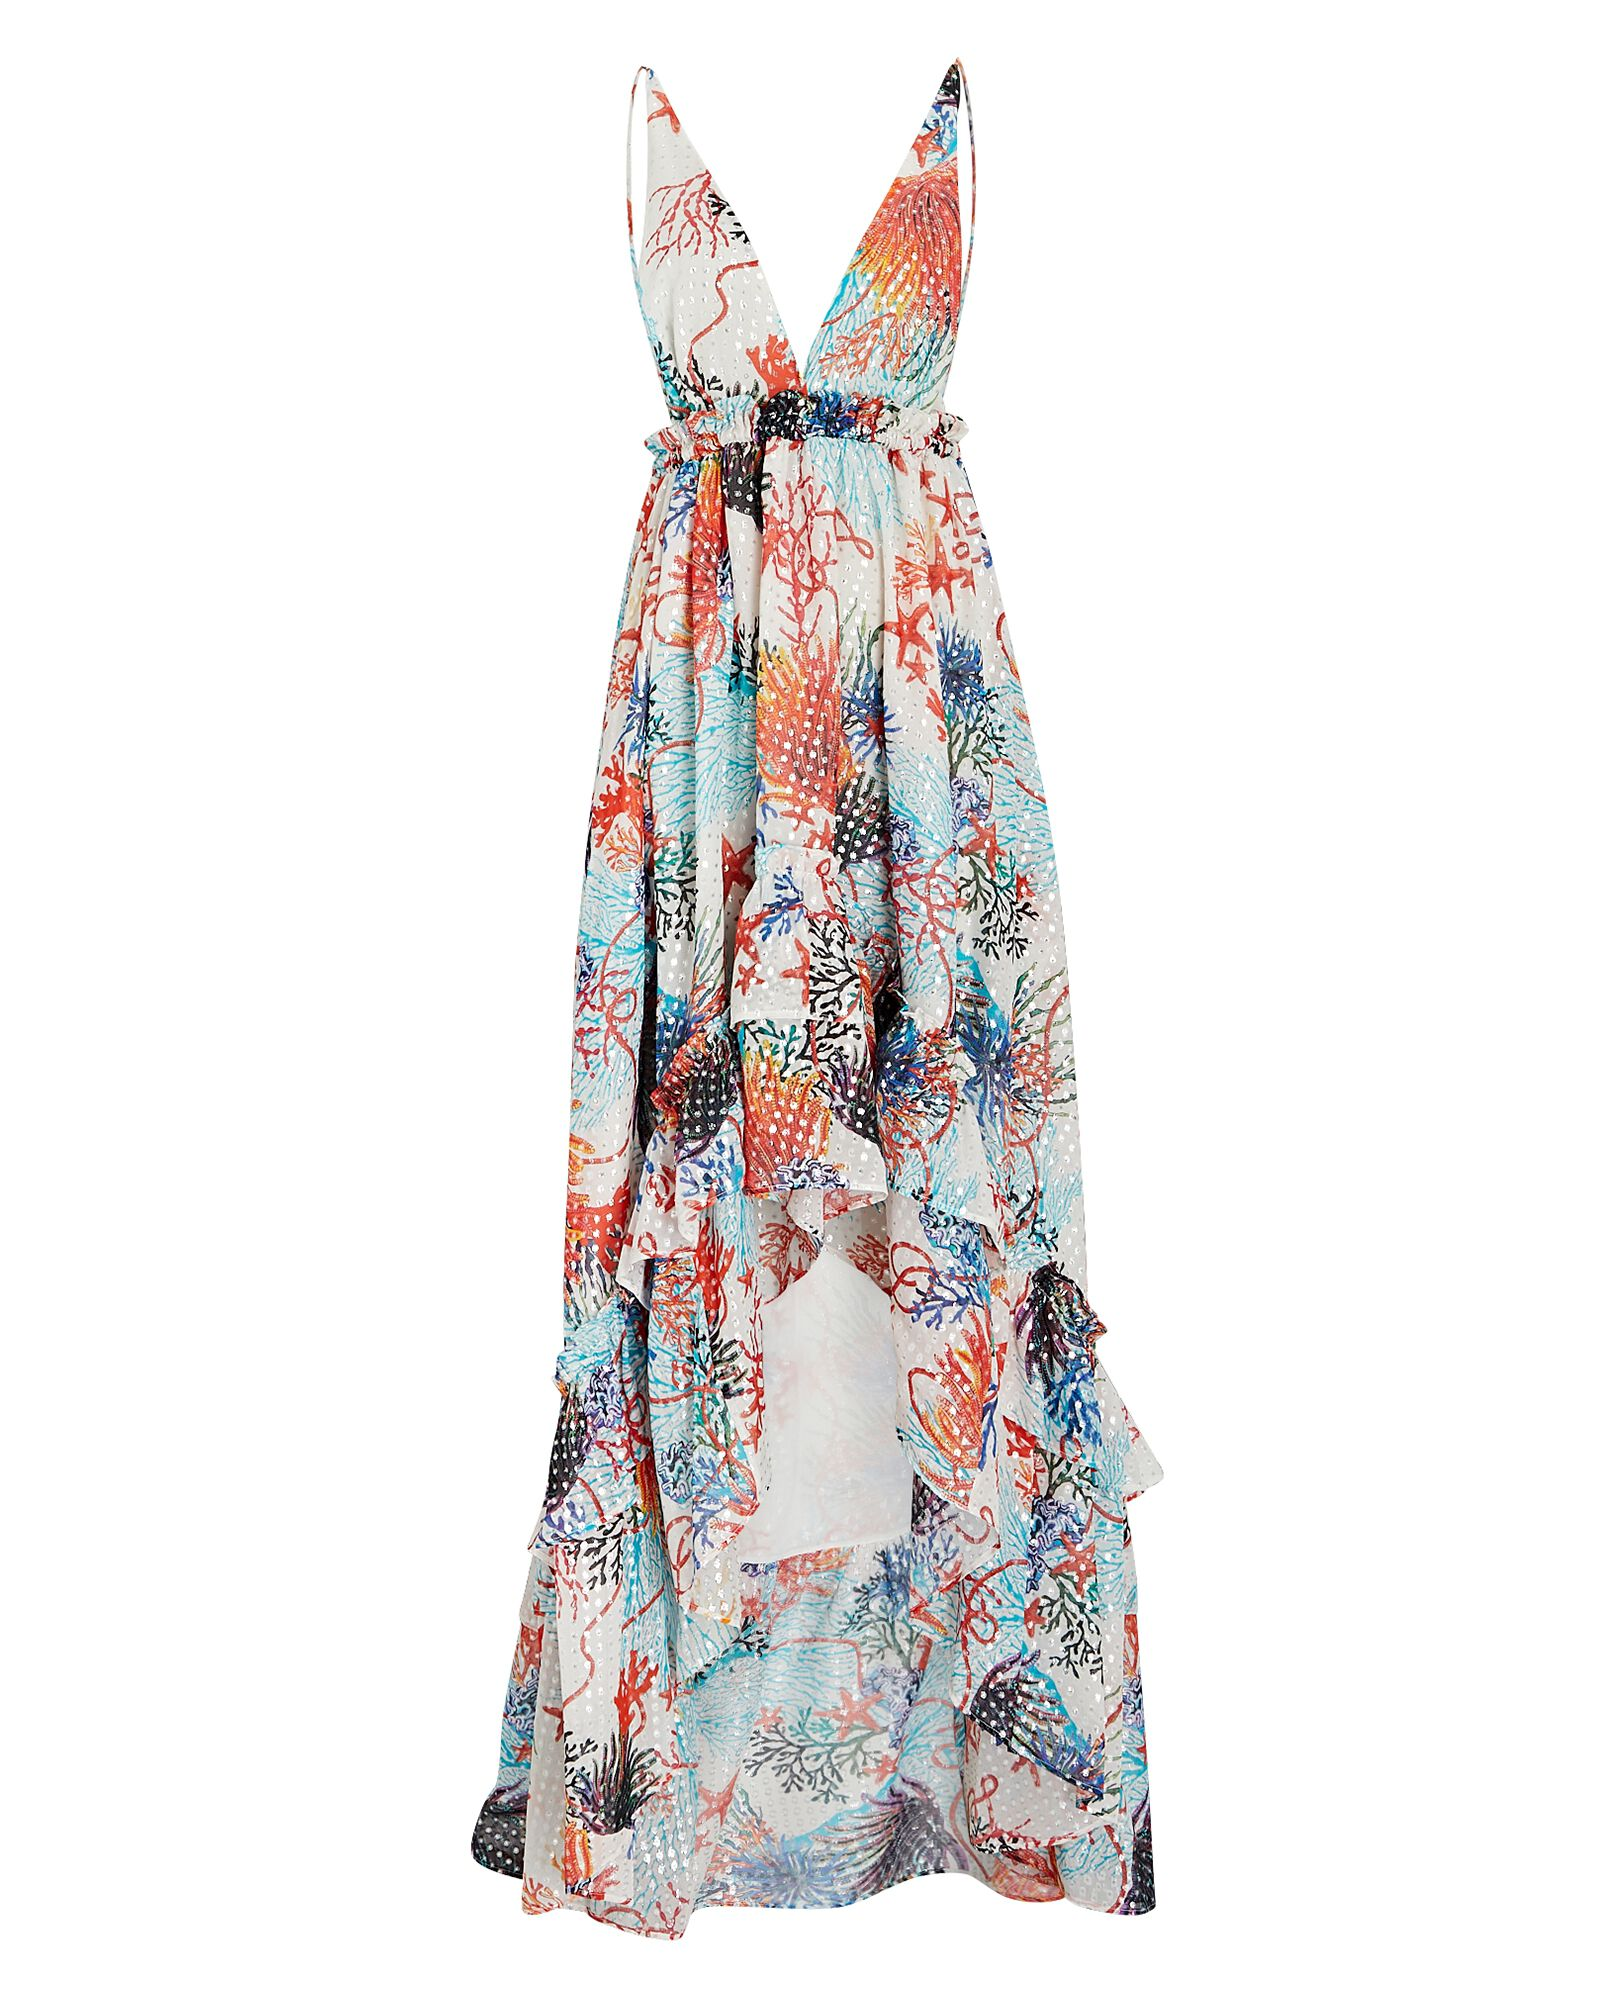 Ruffled Coral Georgette Maxi Dress, WHITE/BLUE/ORANGE, hi-res